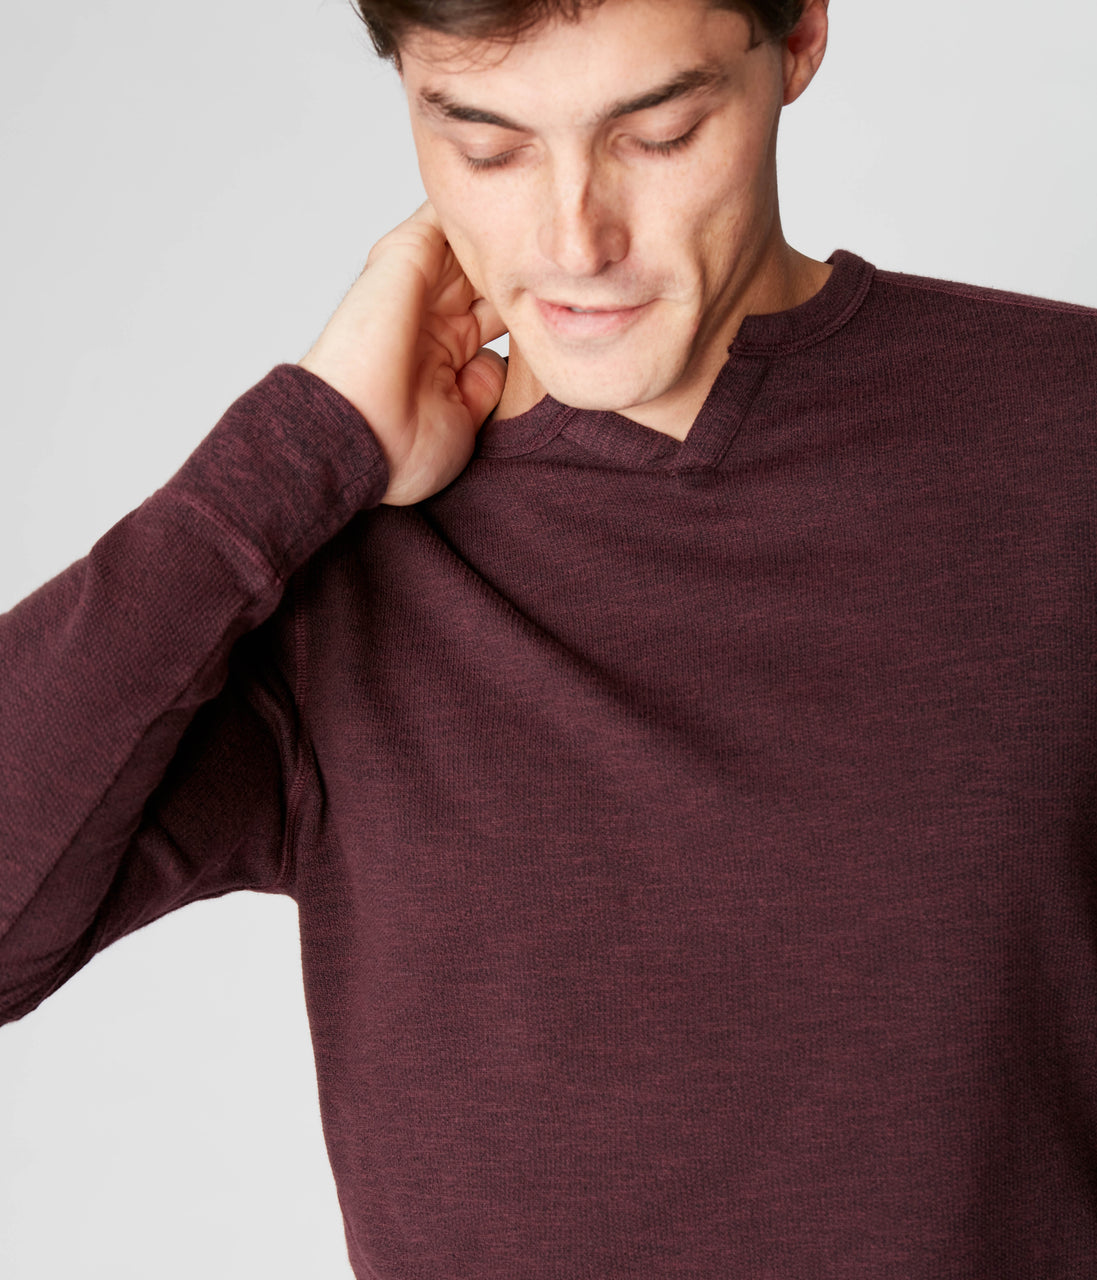 Victory V-Notch Sweatshirt in Black Marl - Wine - Good Man Brand - Victory V-Notch Sweatshirt in Black Marl - Wine